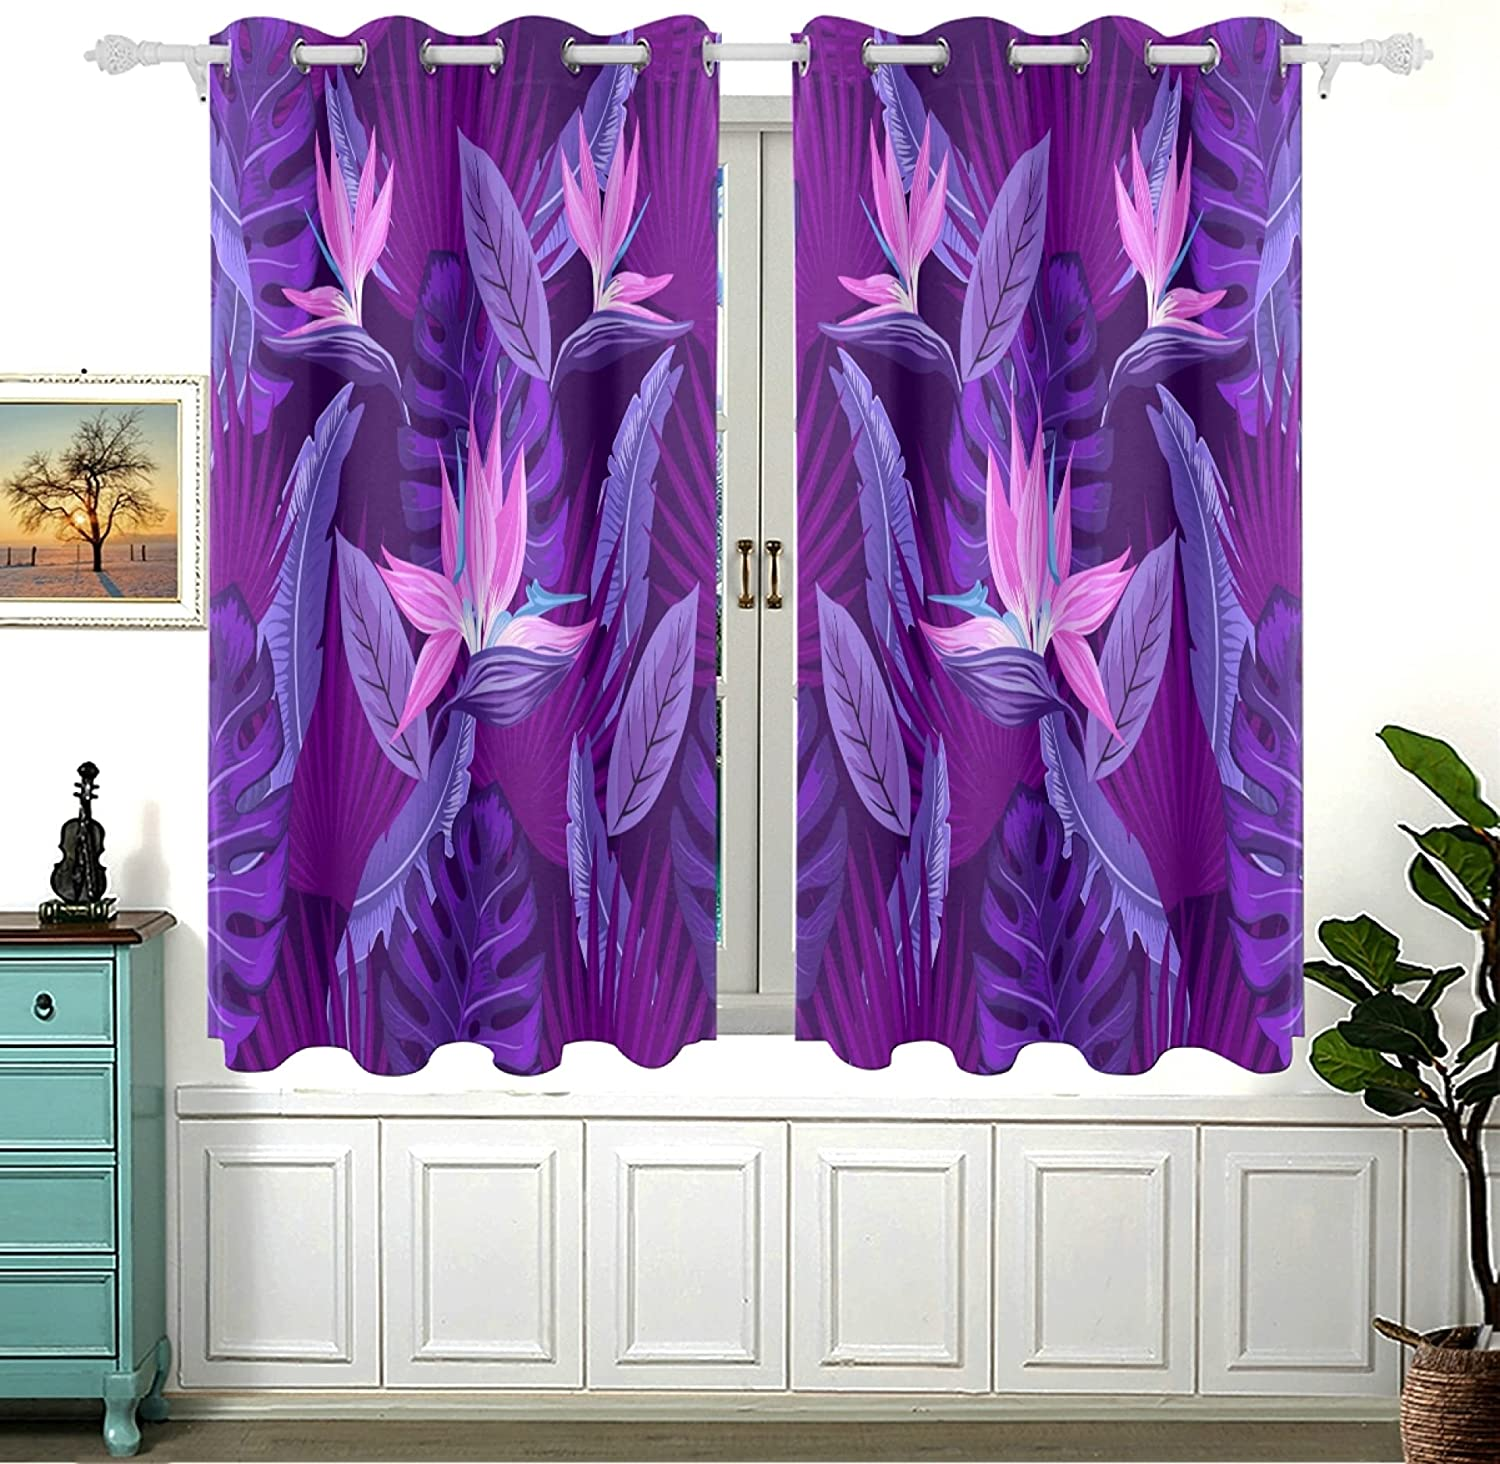 Spring Romantic Sweet Flower Lilac Room for De Oklahoma City Mall Darkening sold out Bedroom